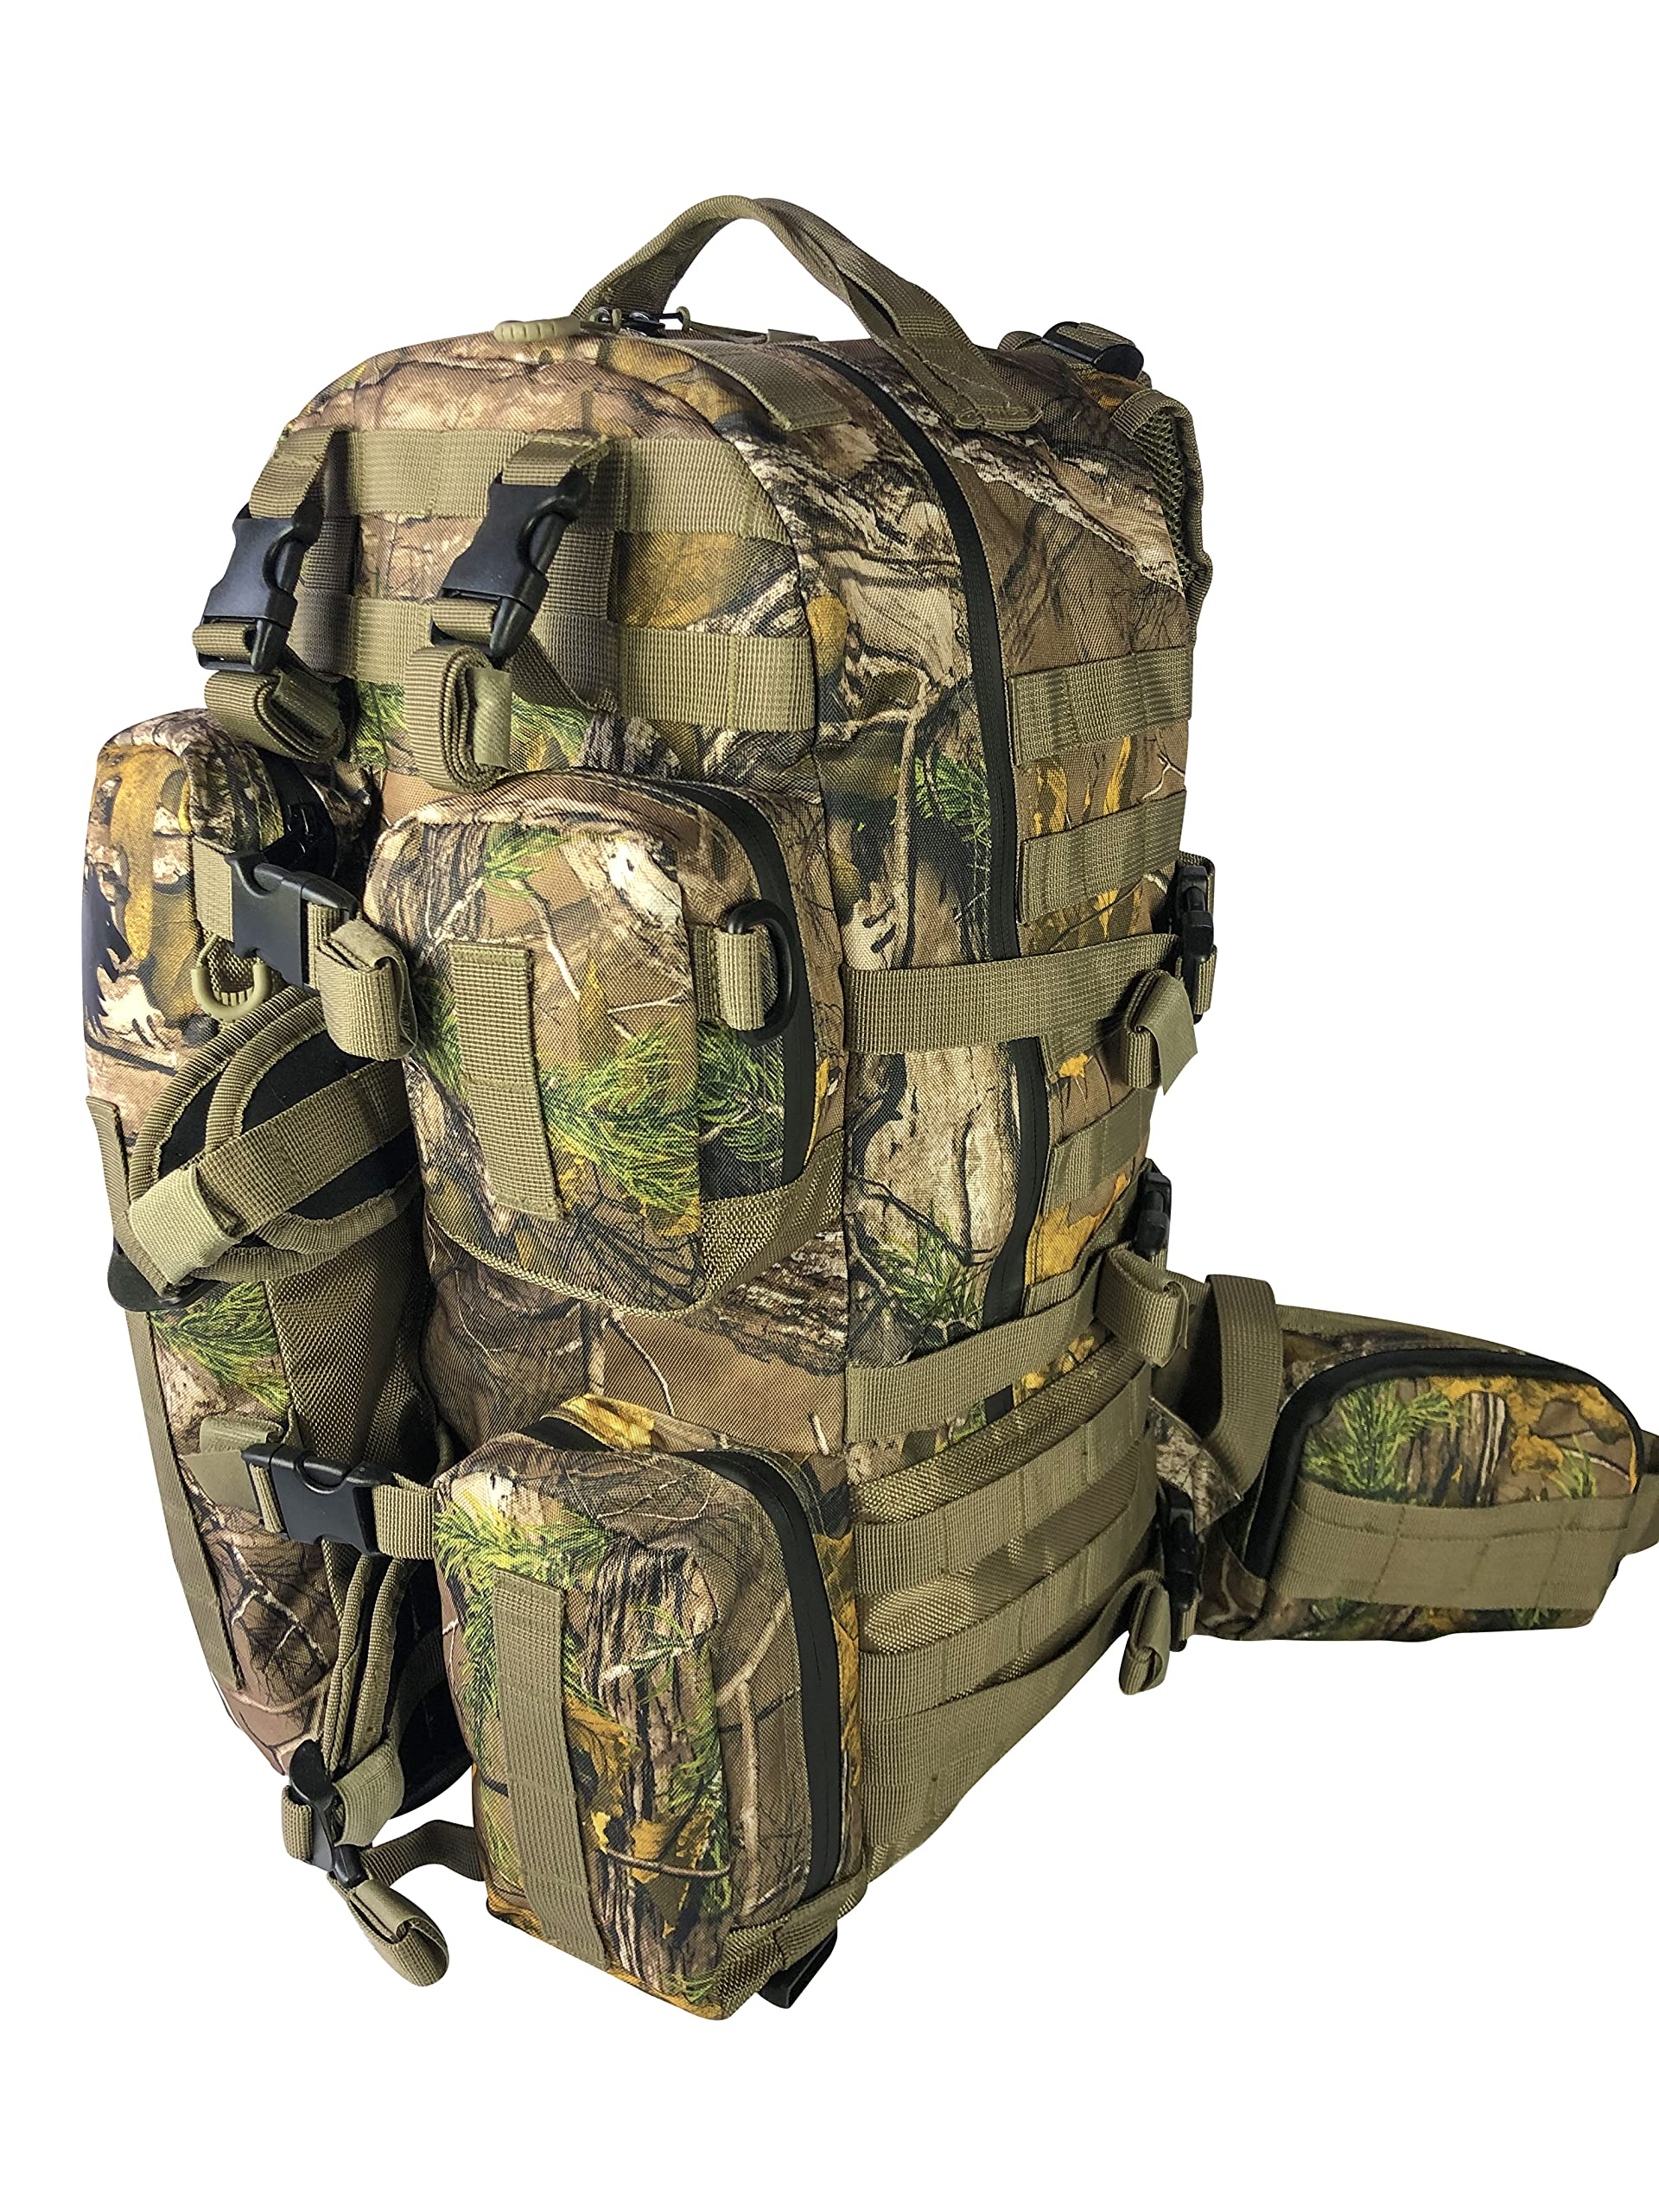 Backpack for Rifles, Bows, Crossbows, Muzzleloader, Hunting, Hiking, Archery, Blackpowder, Outdoors Expeditionary Alpha Pack by FIELDCRAFT